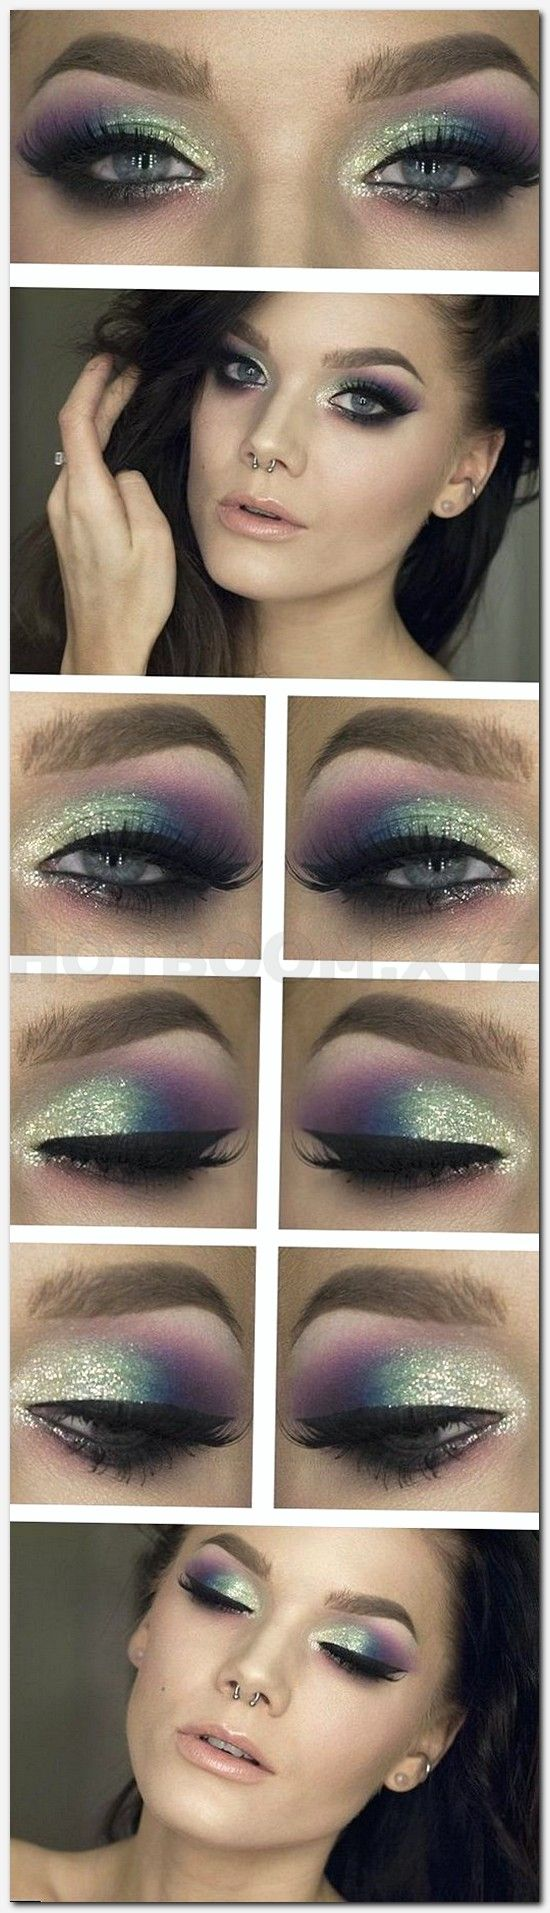 next makeup reviews, makeup bridal hindi, amazing makeup looks, ingredients cosmetics, indian fashion makeup, via makeup, make tips video, dainty doll cosmetics, eye makeup trends fall 2017, wedding hair makeup cost, make up artist cosmetics, latest mascara 2017, makeup tips to look prettier, makeup on breast, online free makeover, you make up